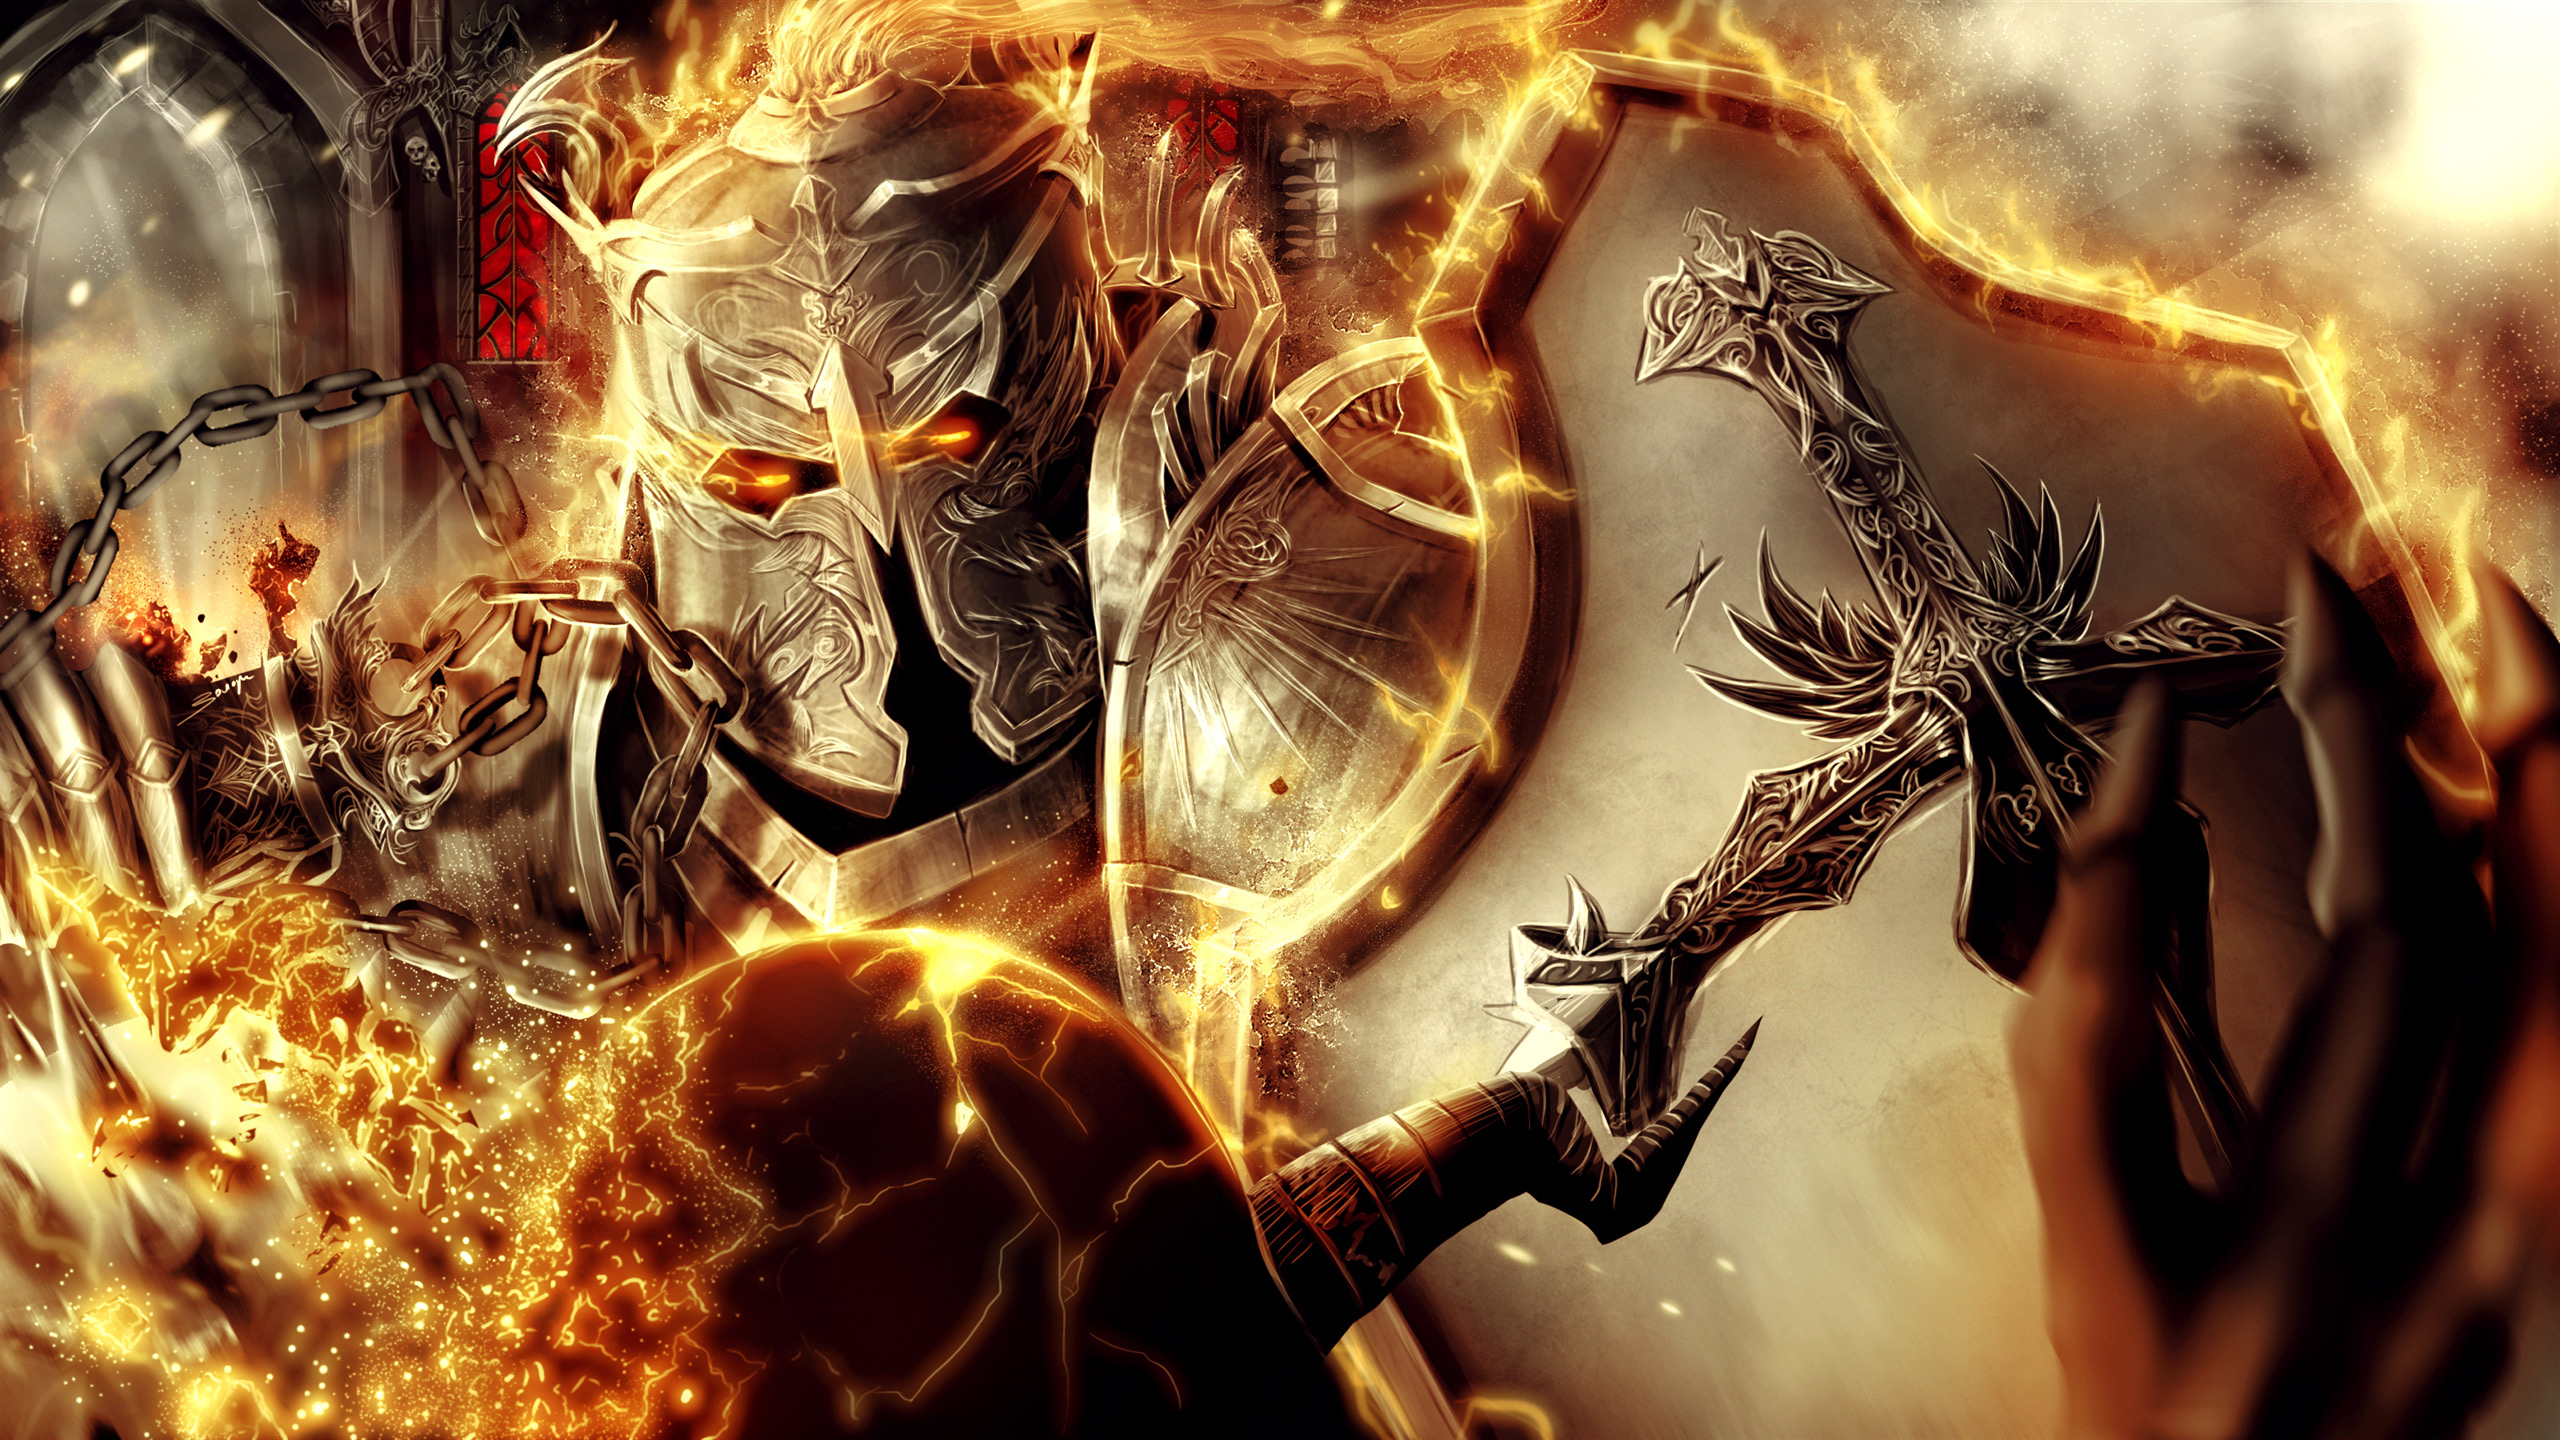 warrior fantasy art fire armor wallpaper wallpapers walls 2560x1440